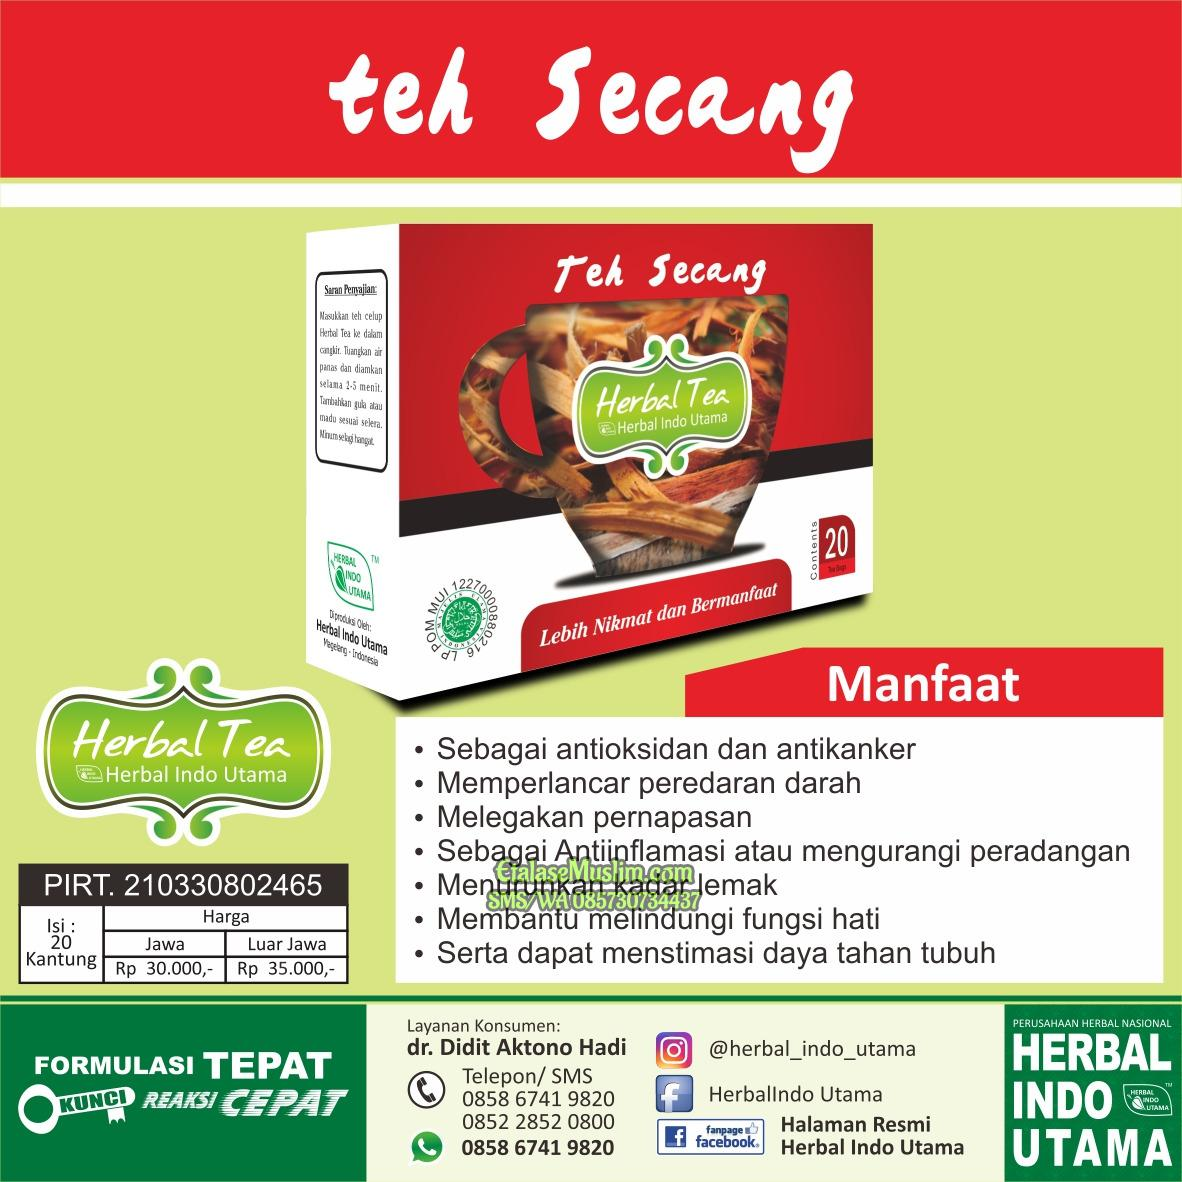 Teh Secang HIU - Herbal Indo Utama - Herbal Tea Secang